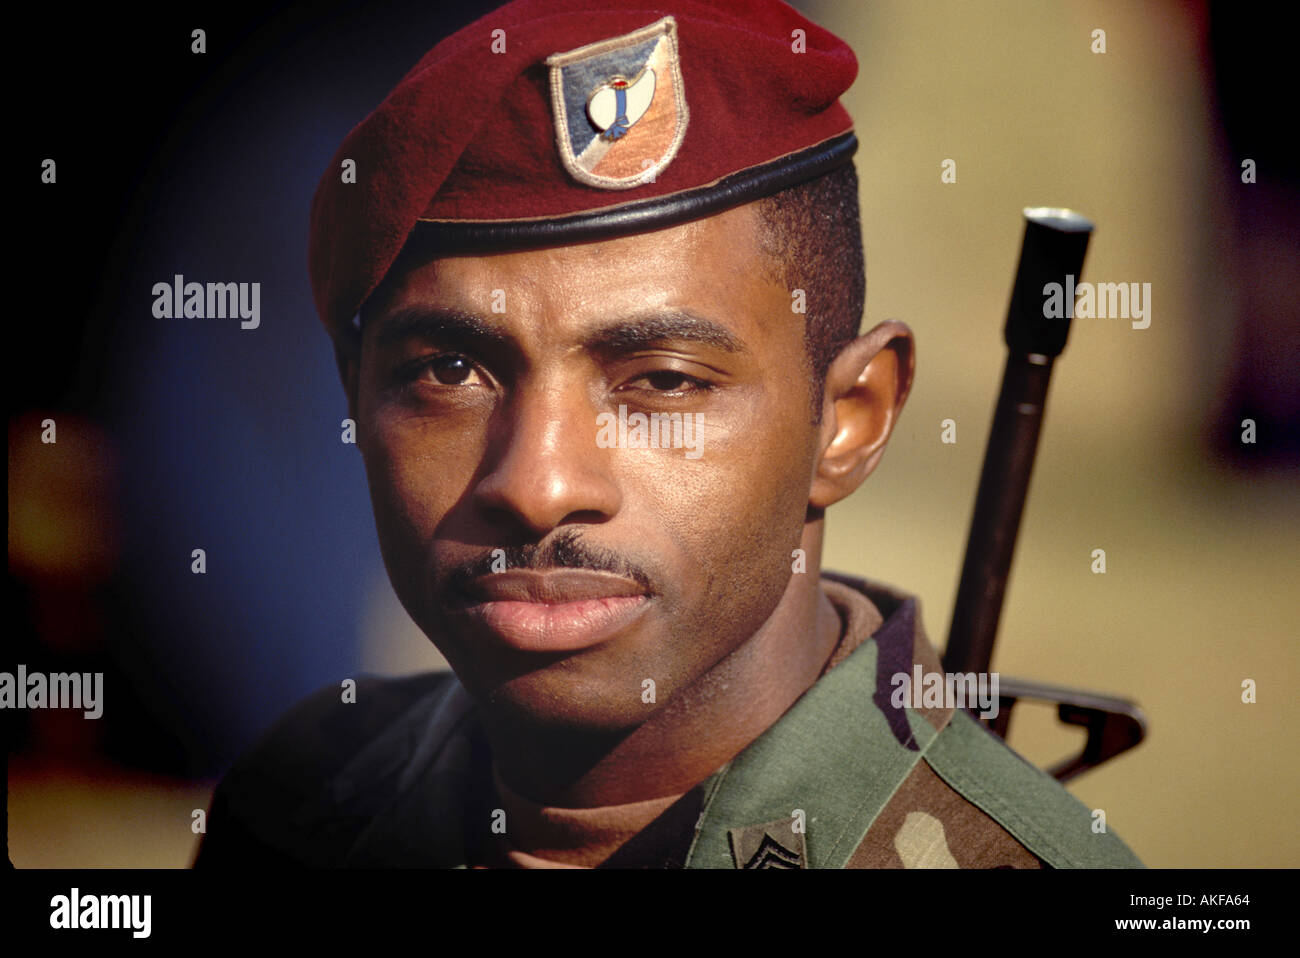 6ccacbe9 Black US Army Soldier with M 16 and Red Beret Stock Photo: 1309283 ...